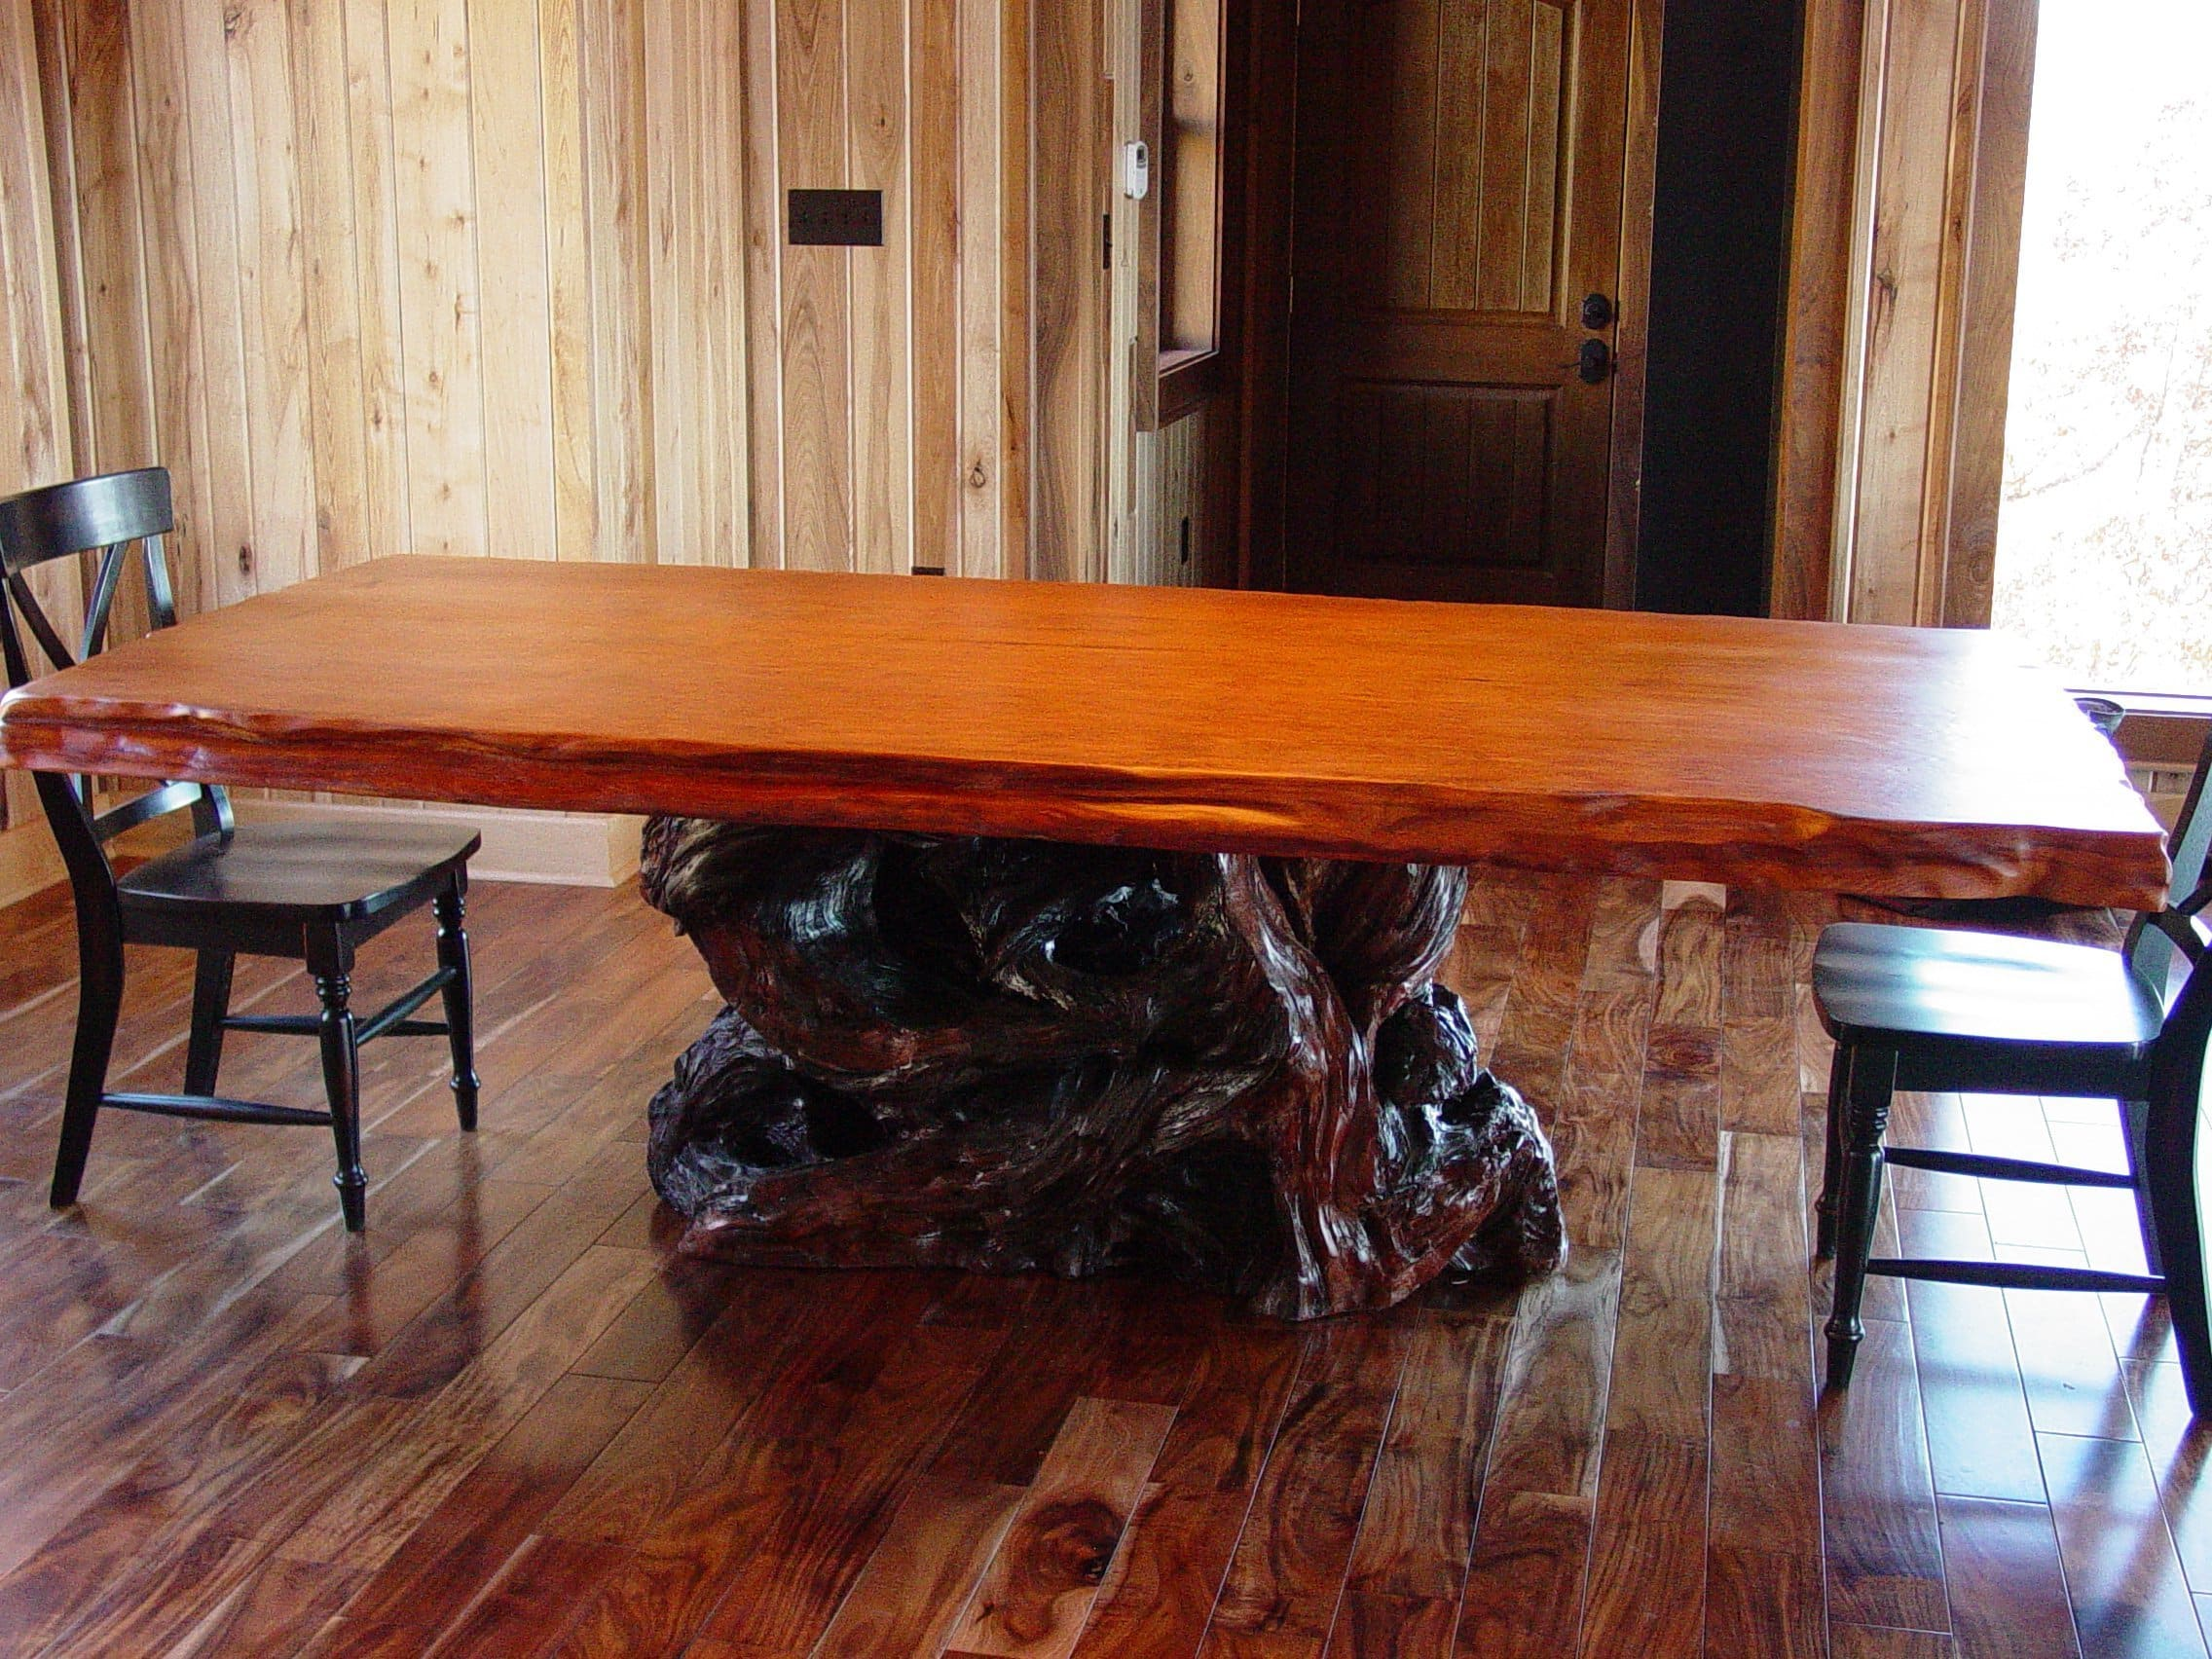 Live Edge Wood Slab Table Rustic